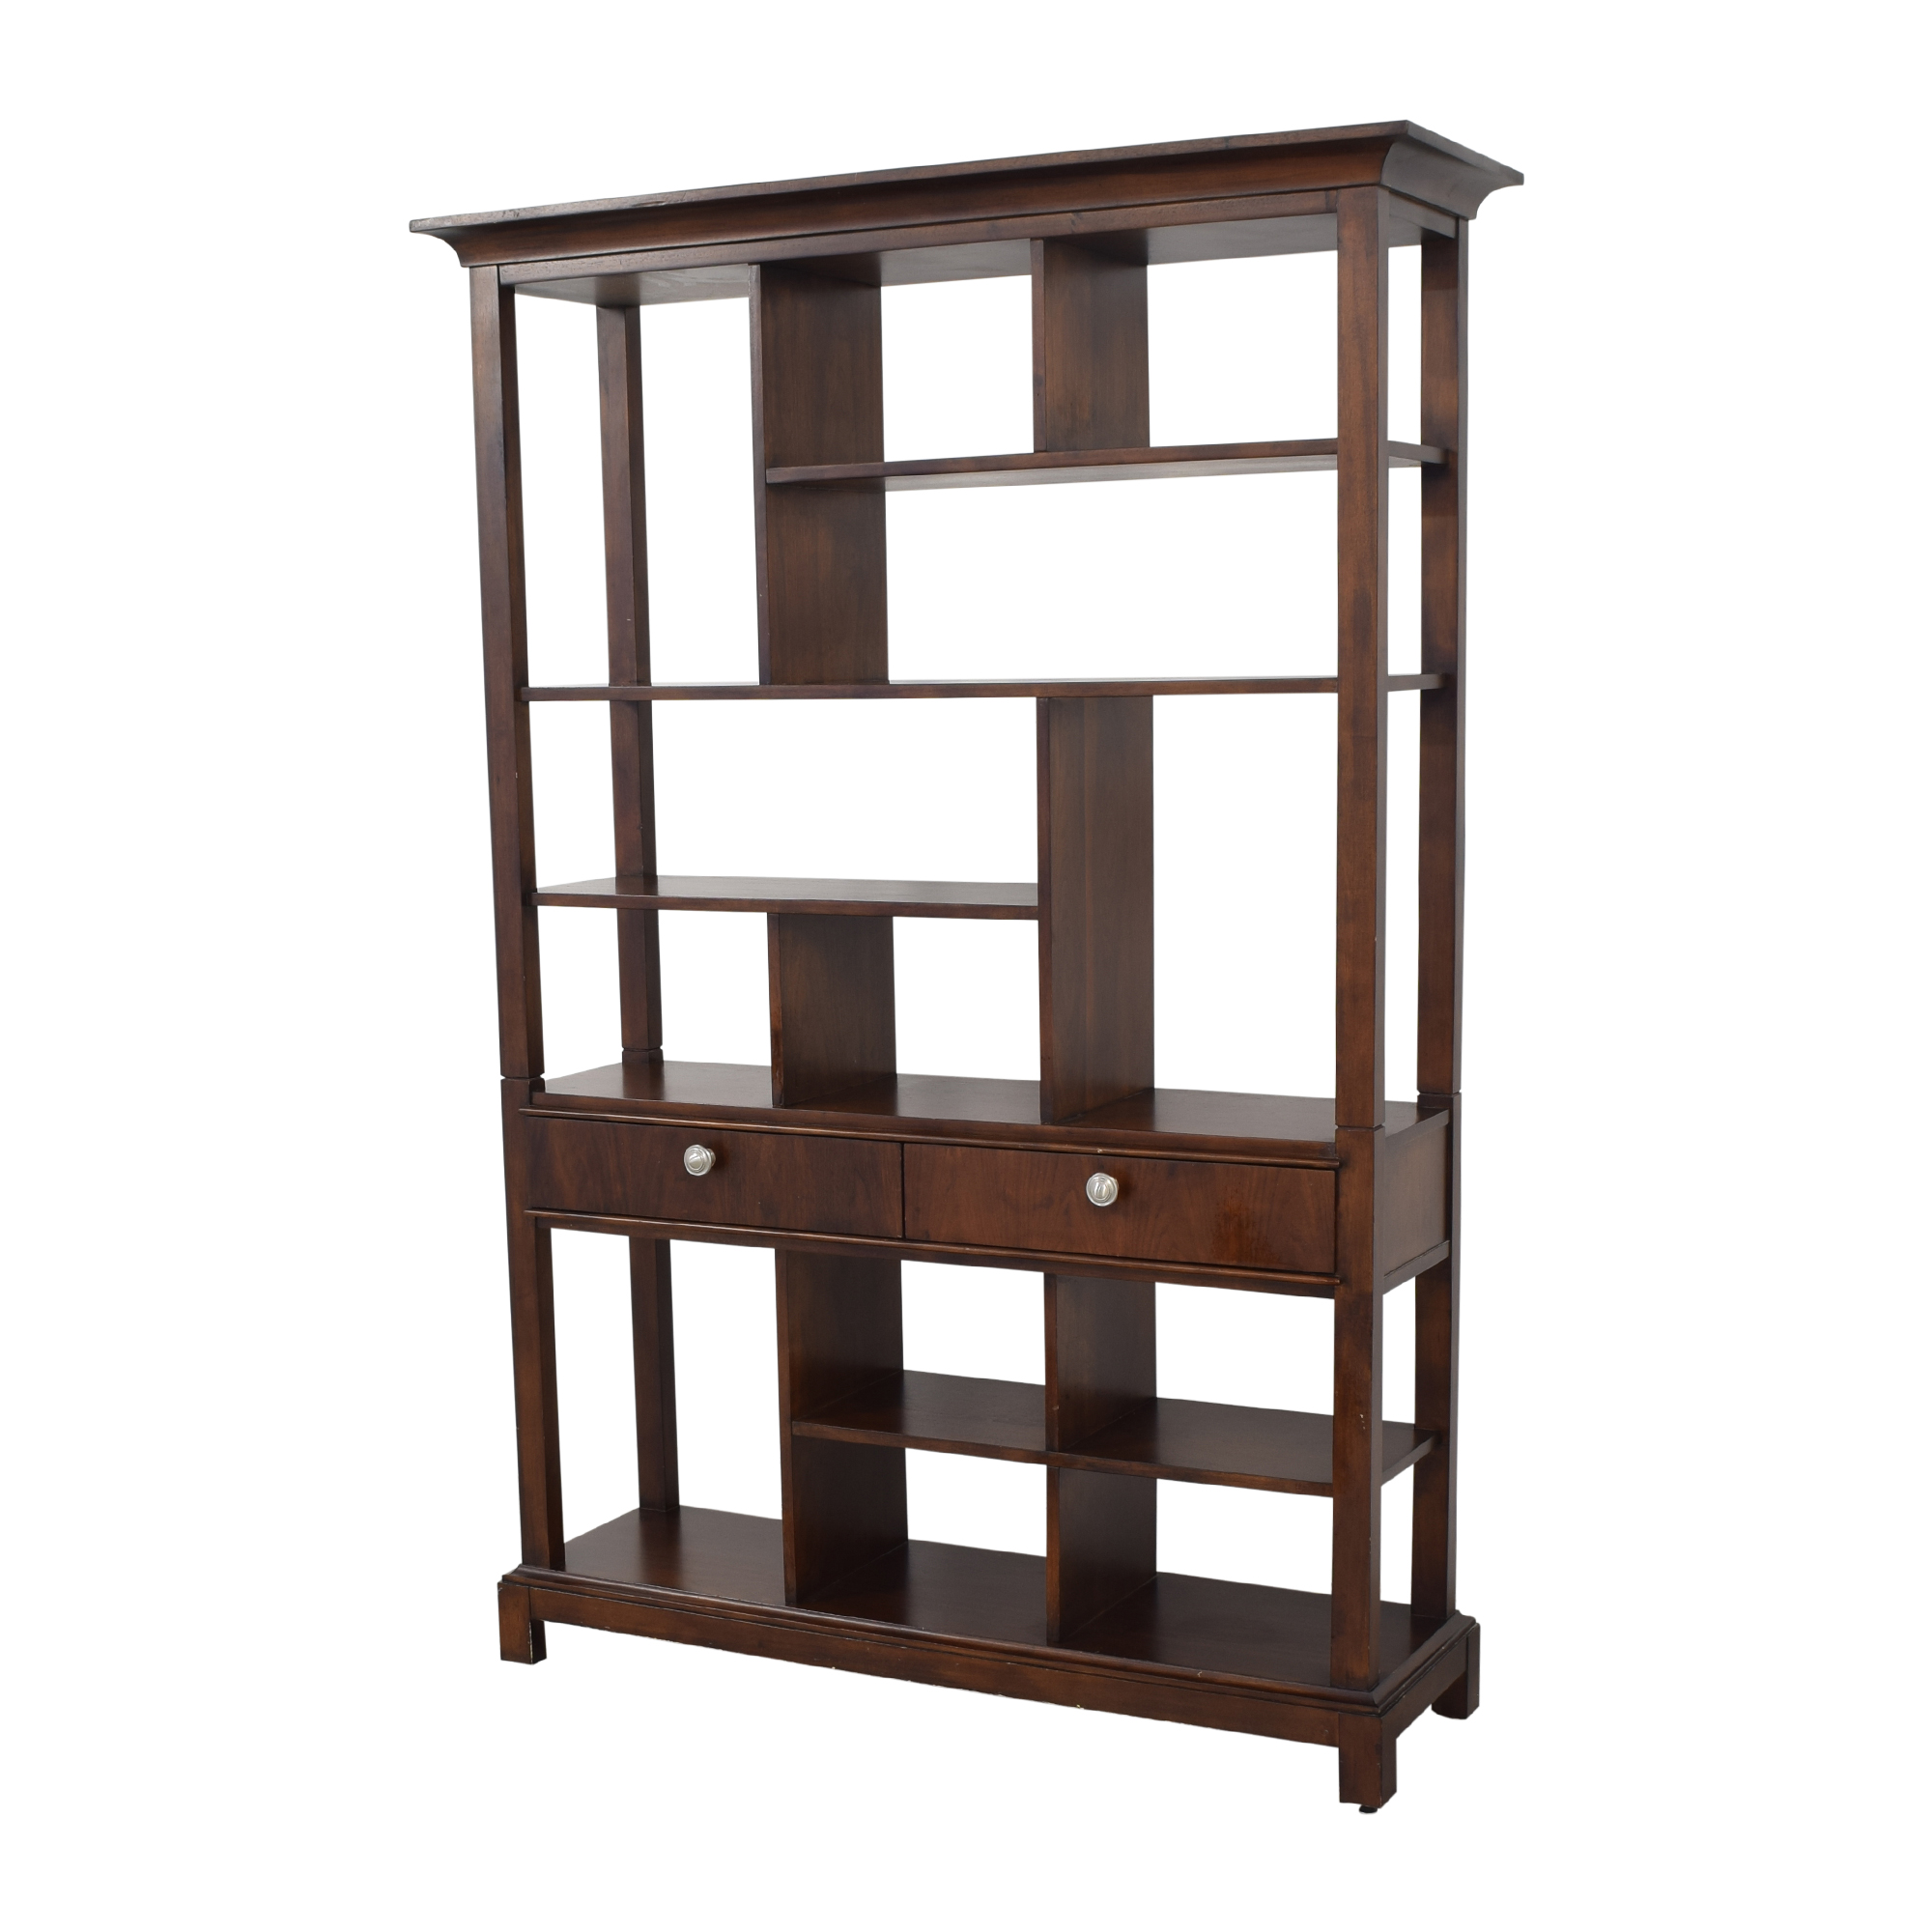 Stanley Furniture Stanley Furniture Etagere Bookcase ma